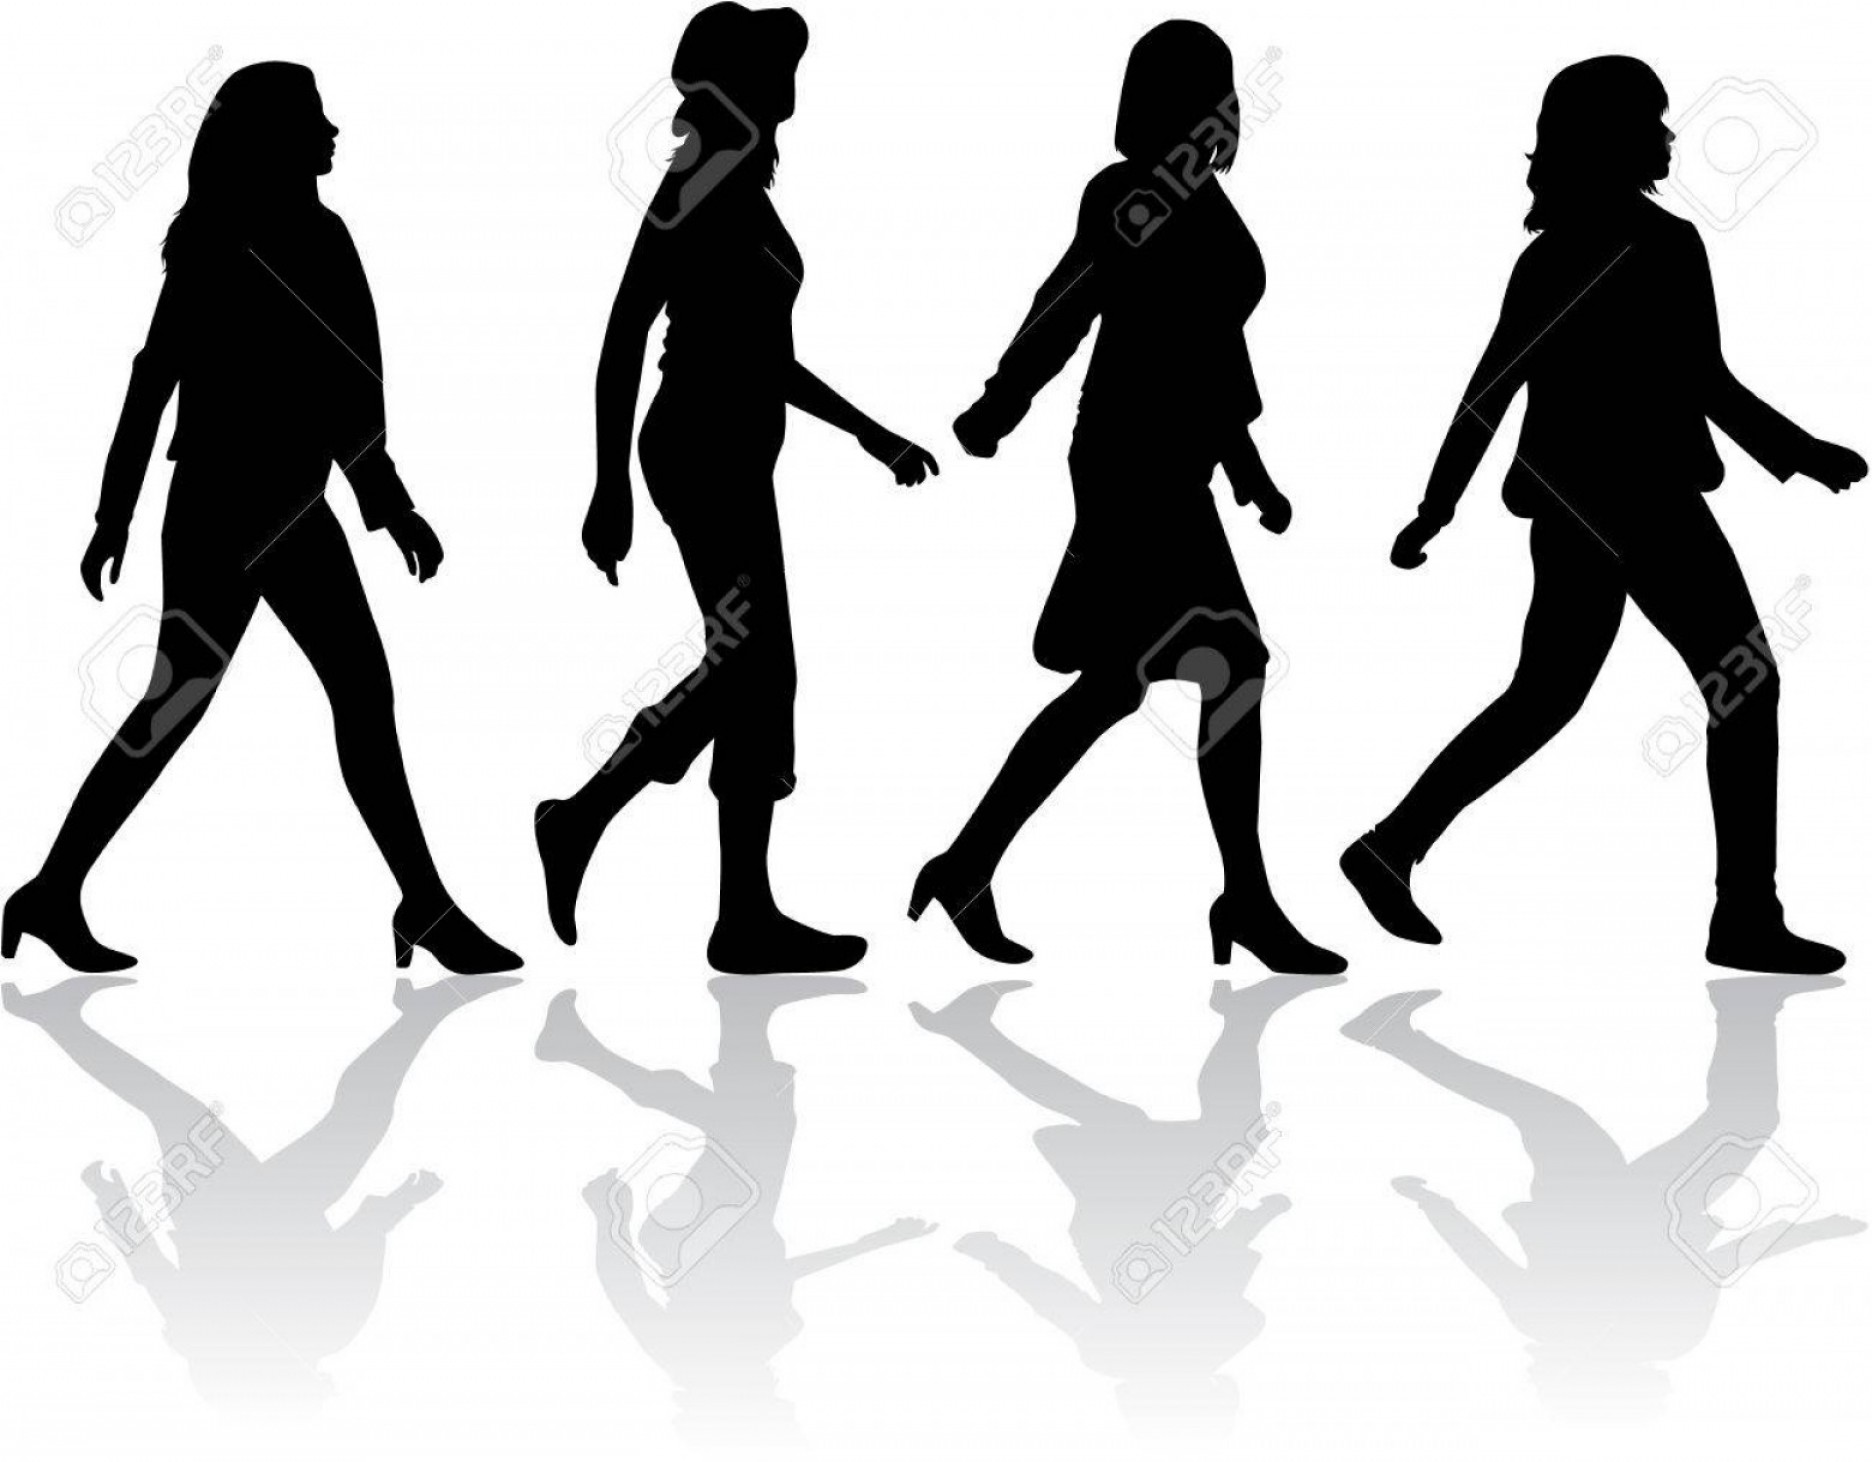 Sillouhette Vector Group: Photostock Vector Group Of People Crowd Of People Silhouettes